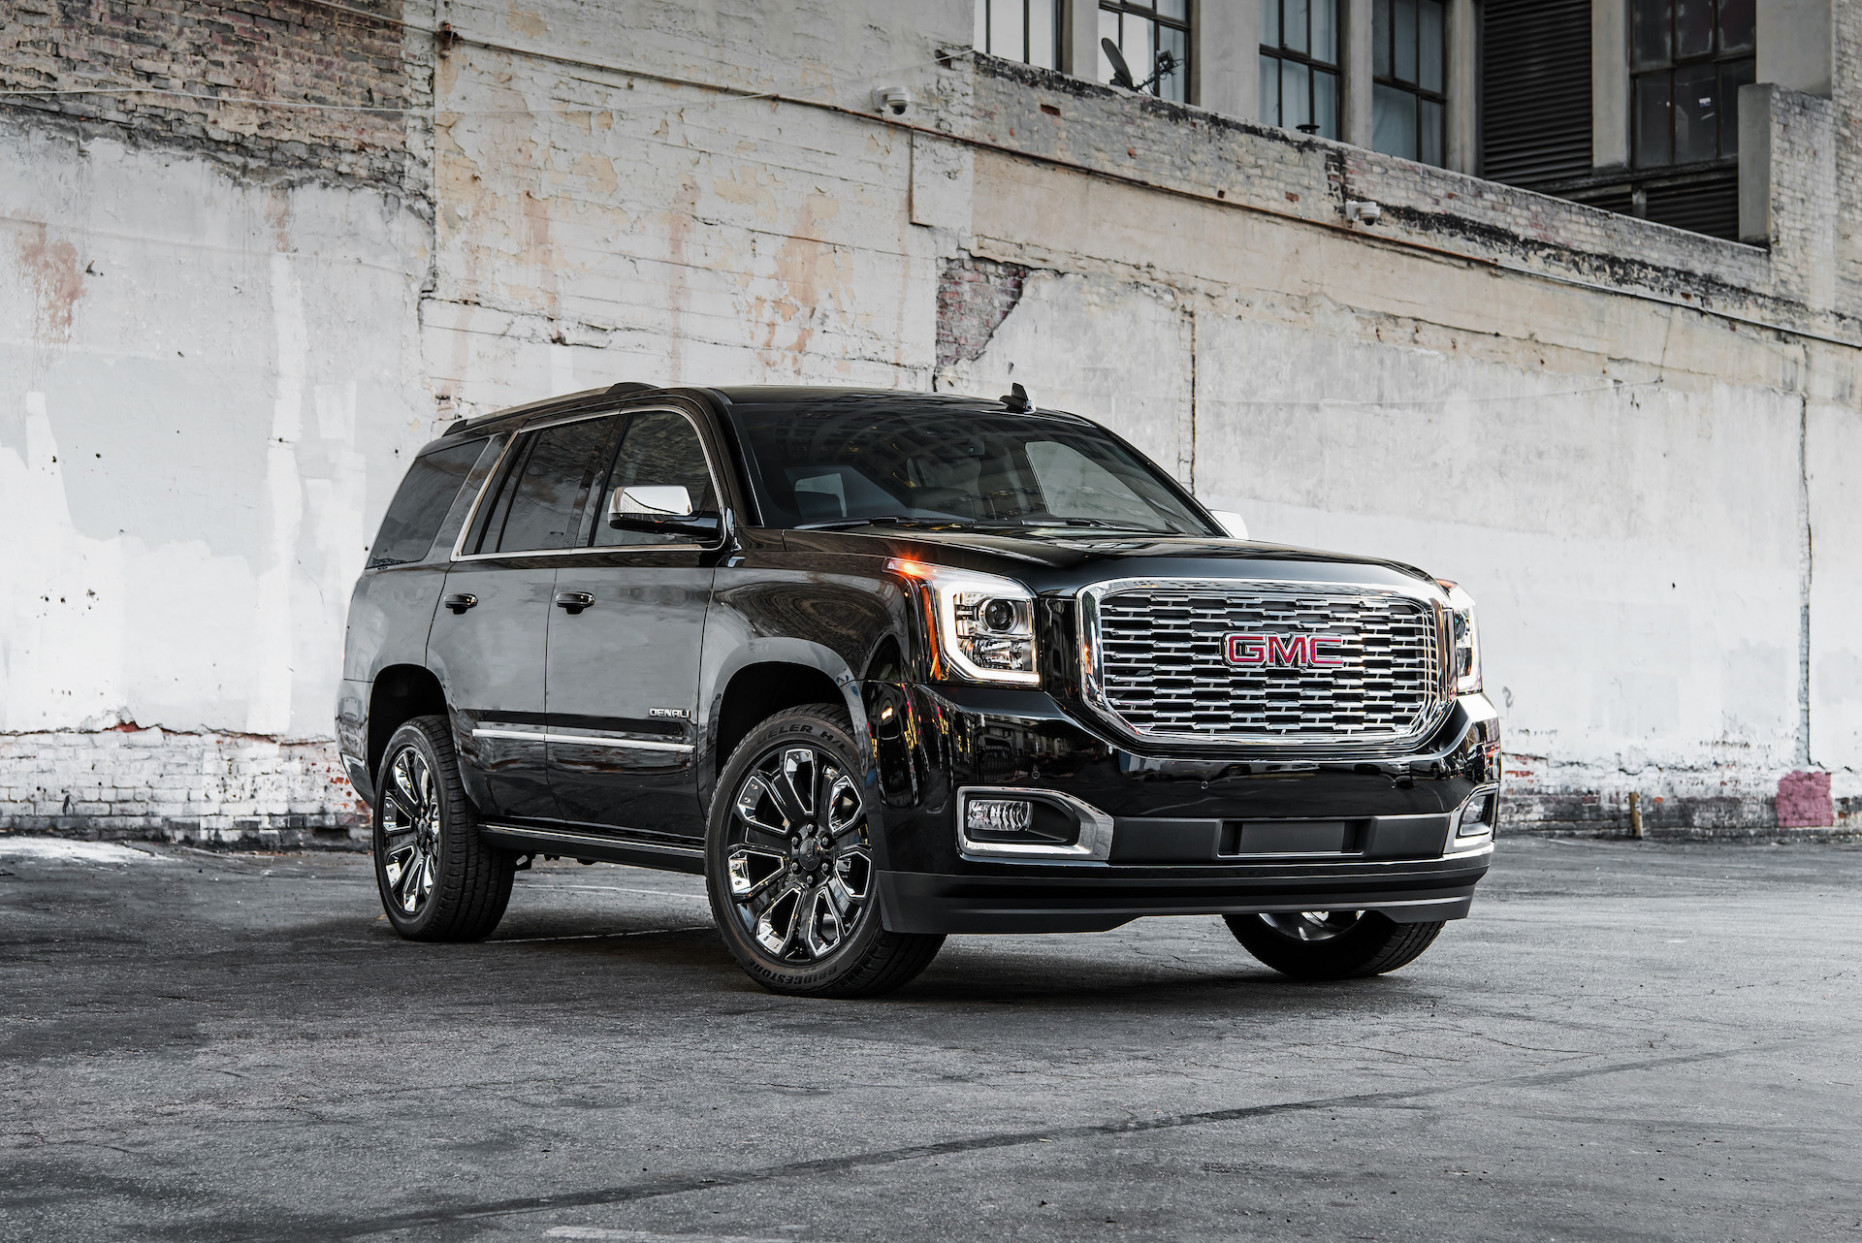 11 GMC Yukon Review, Ratings, Specs, Prices, and Photos - The ..